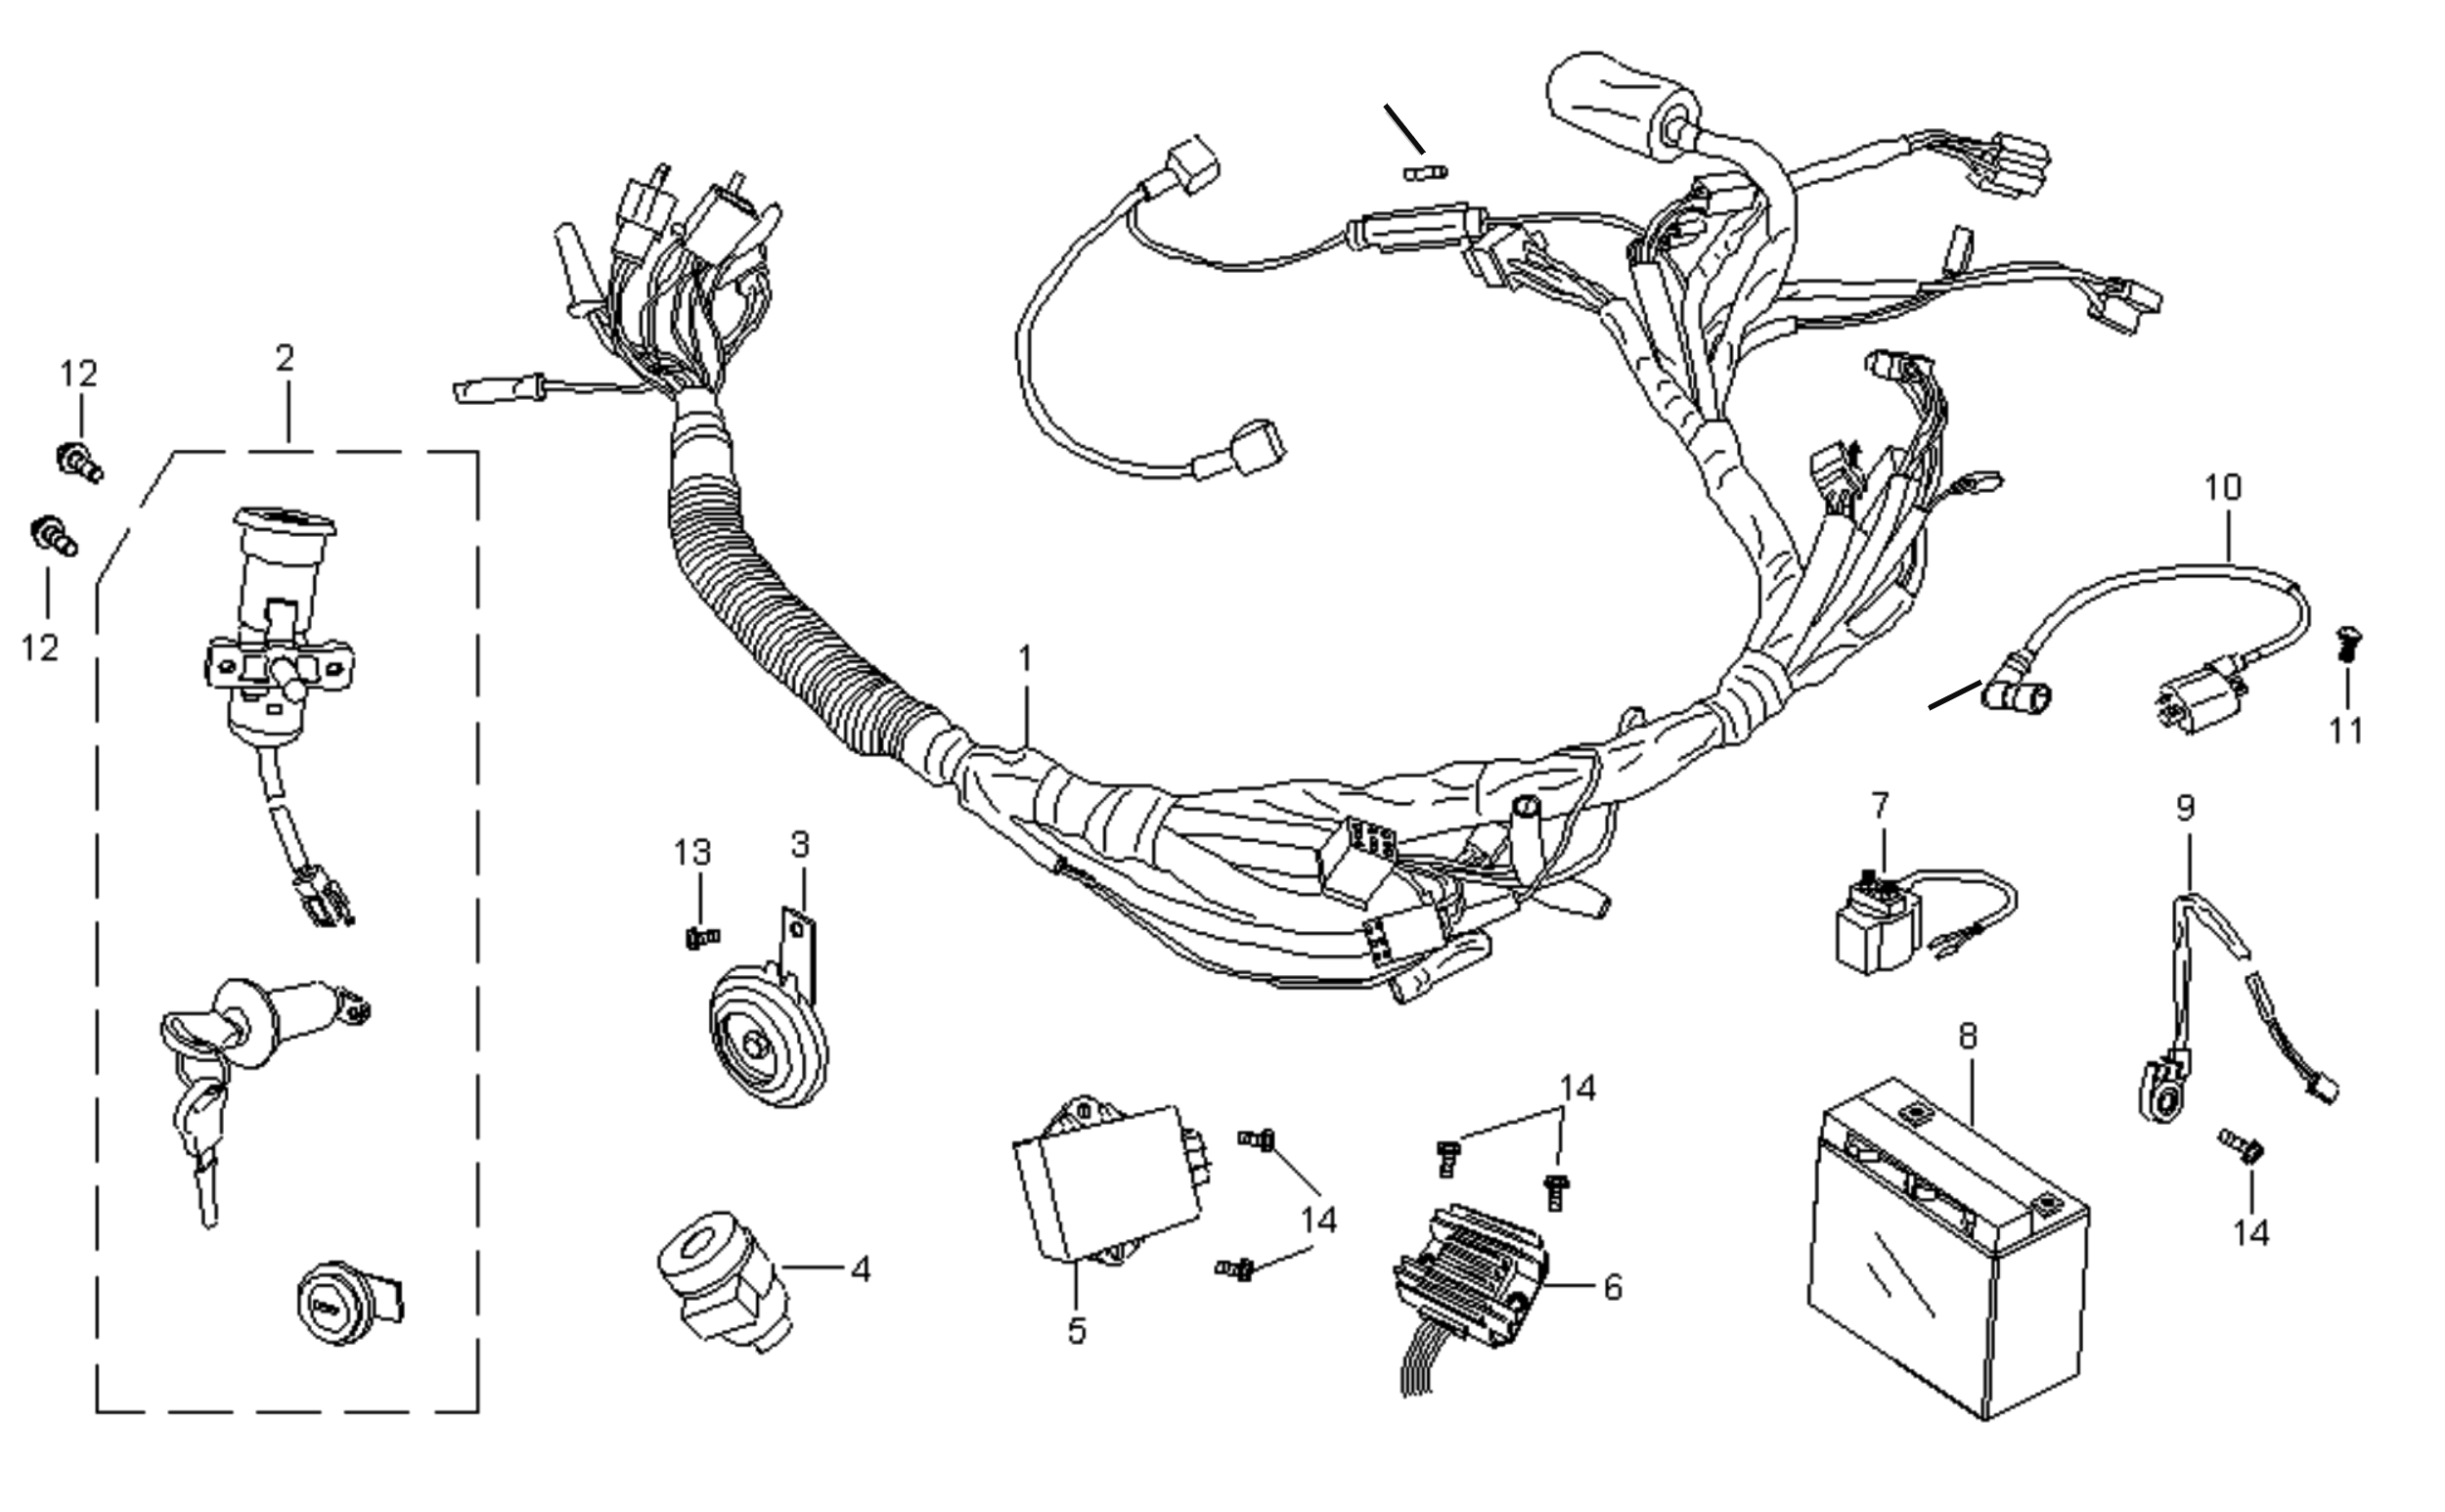 ELECTRICAL / WIRE HARNESS